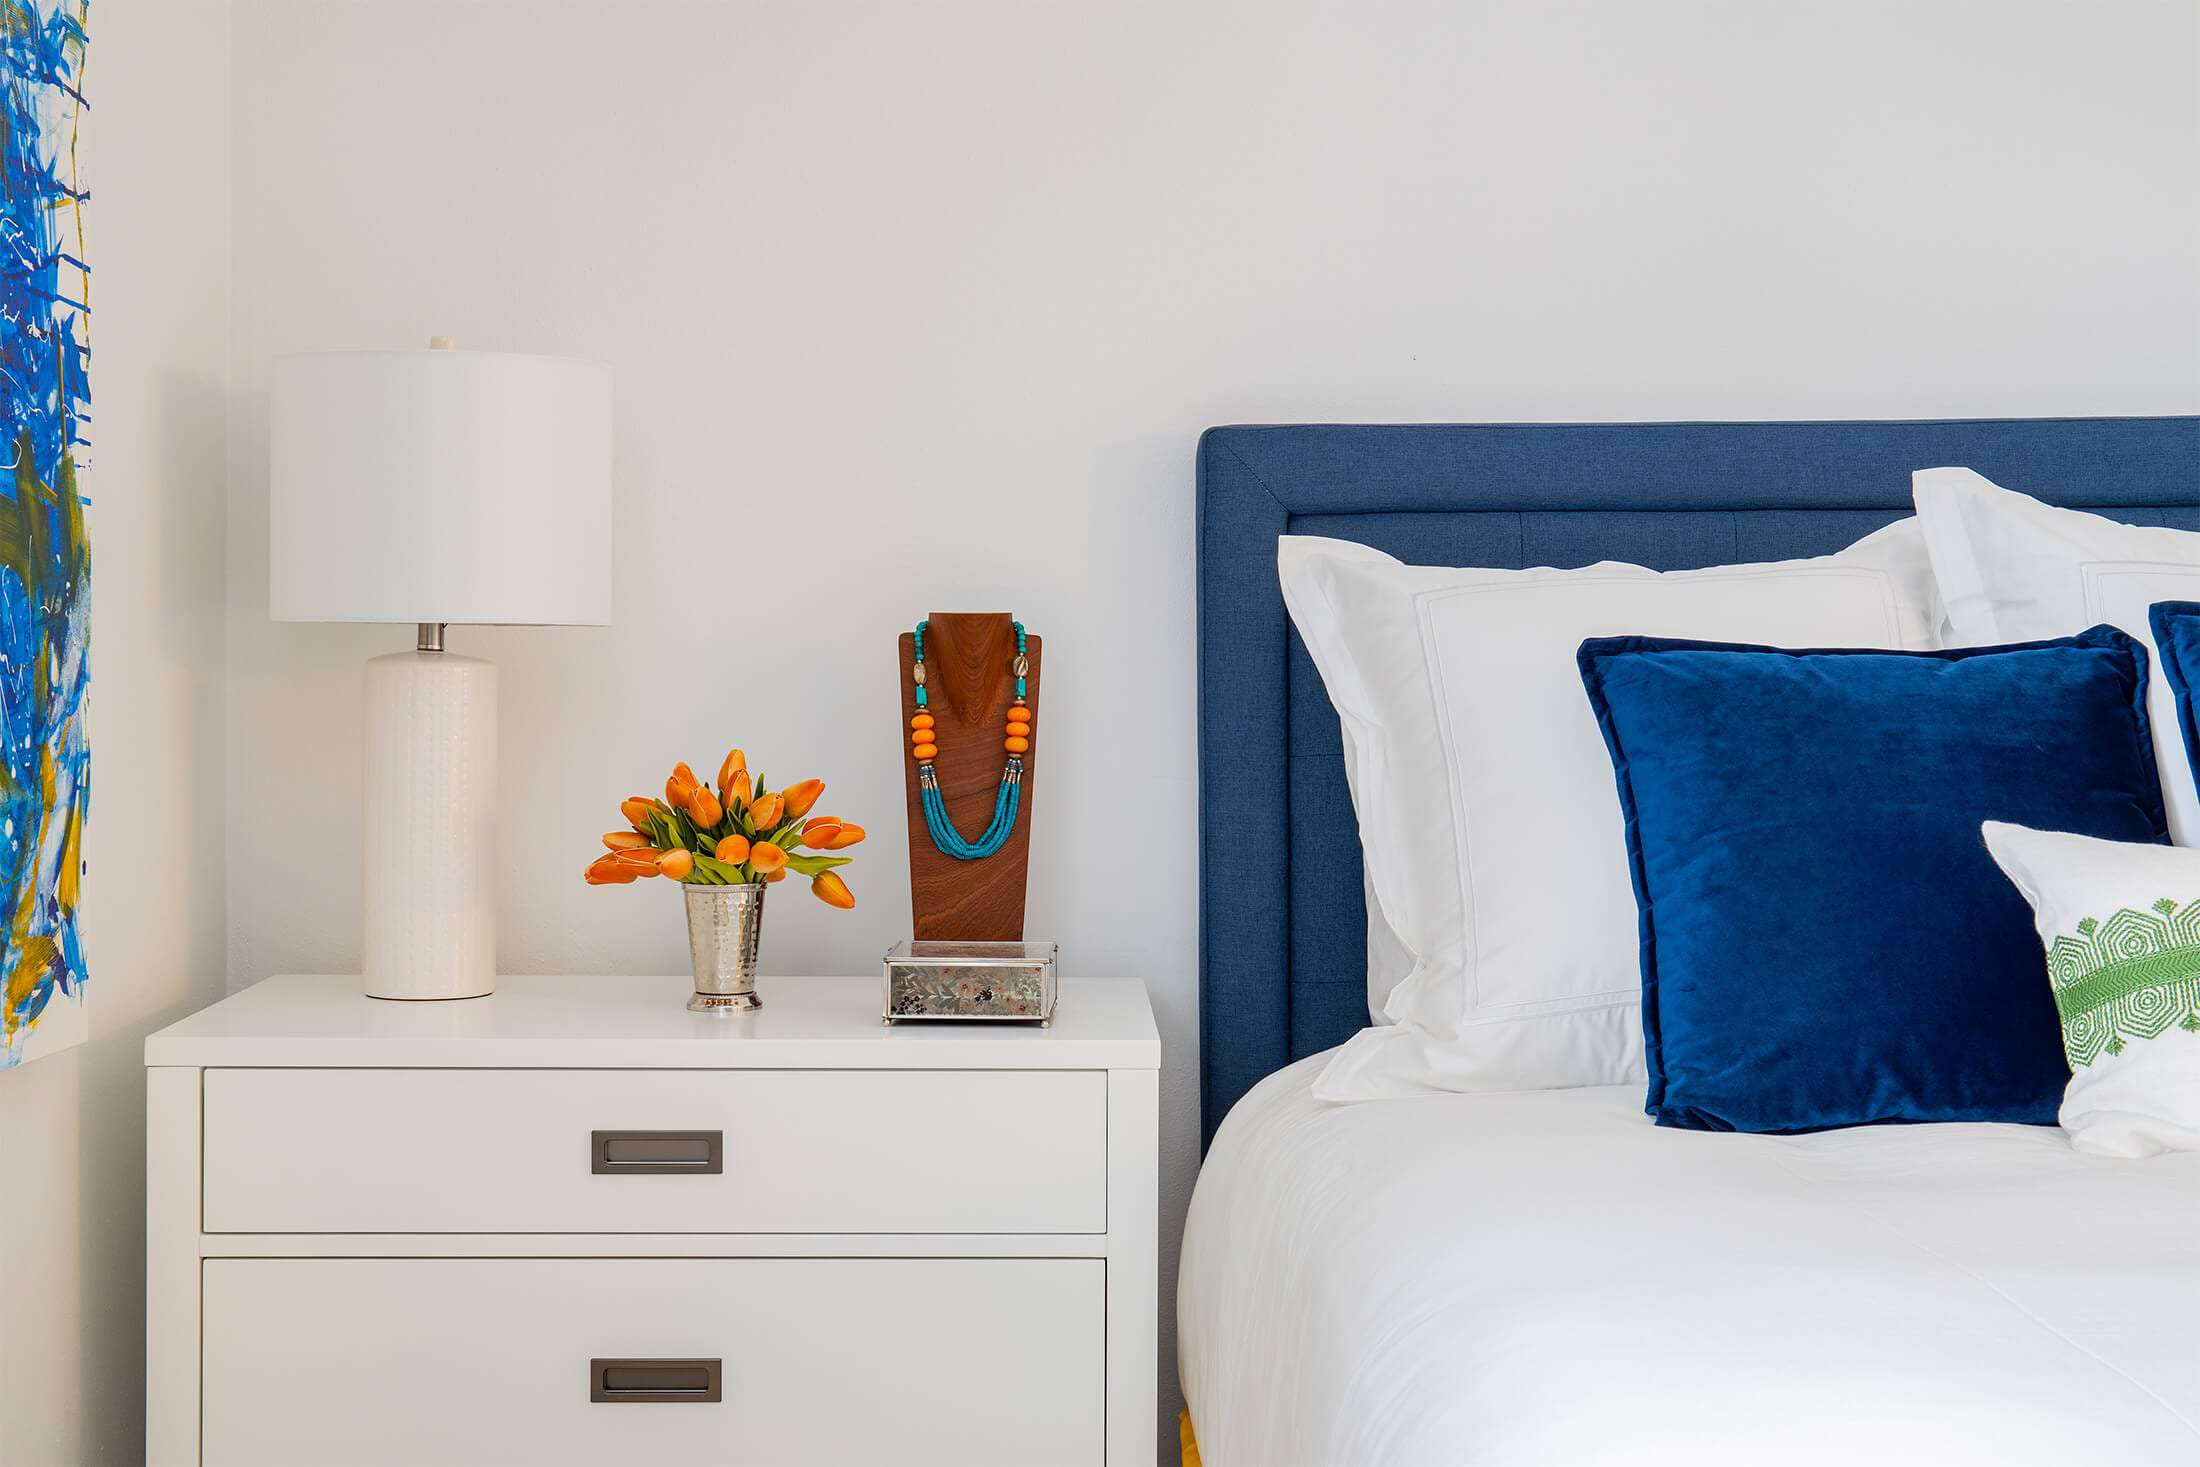 bedside table with orange flowers, modern lamp, and jewelry display